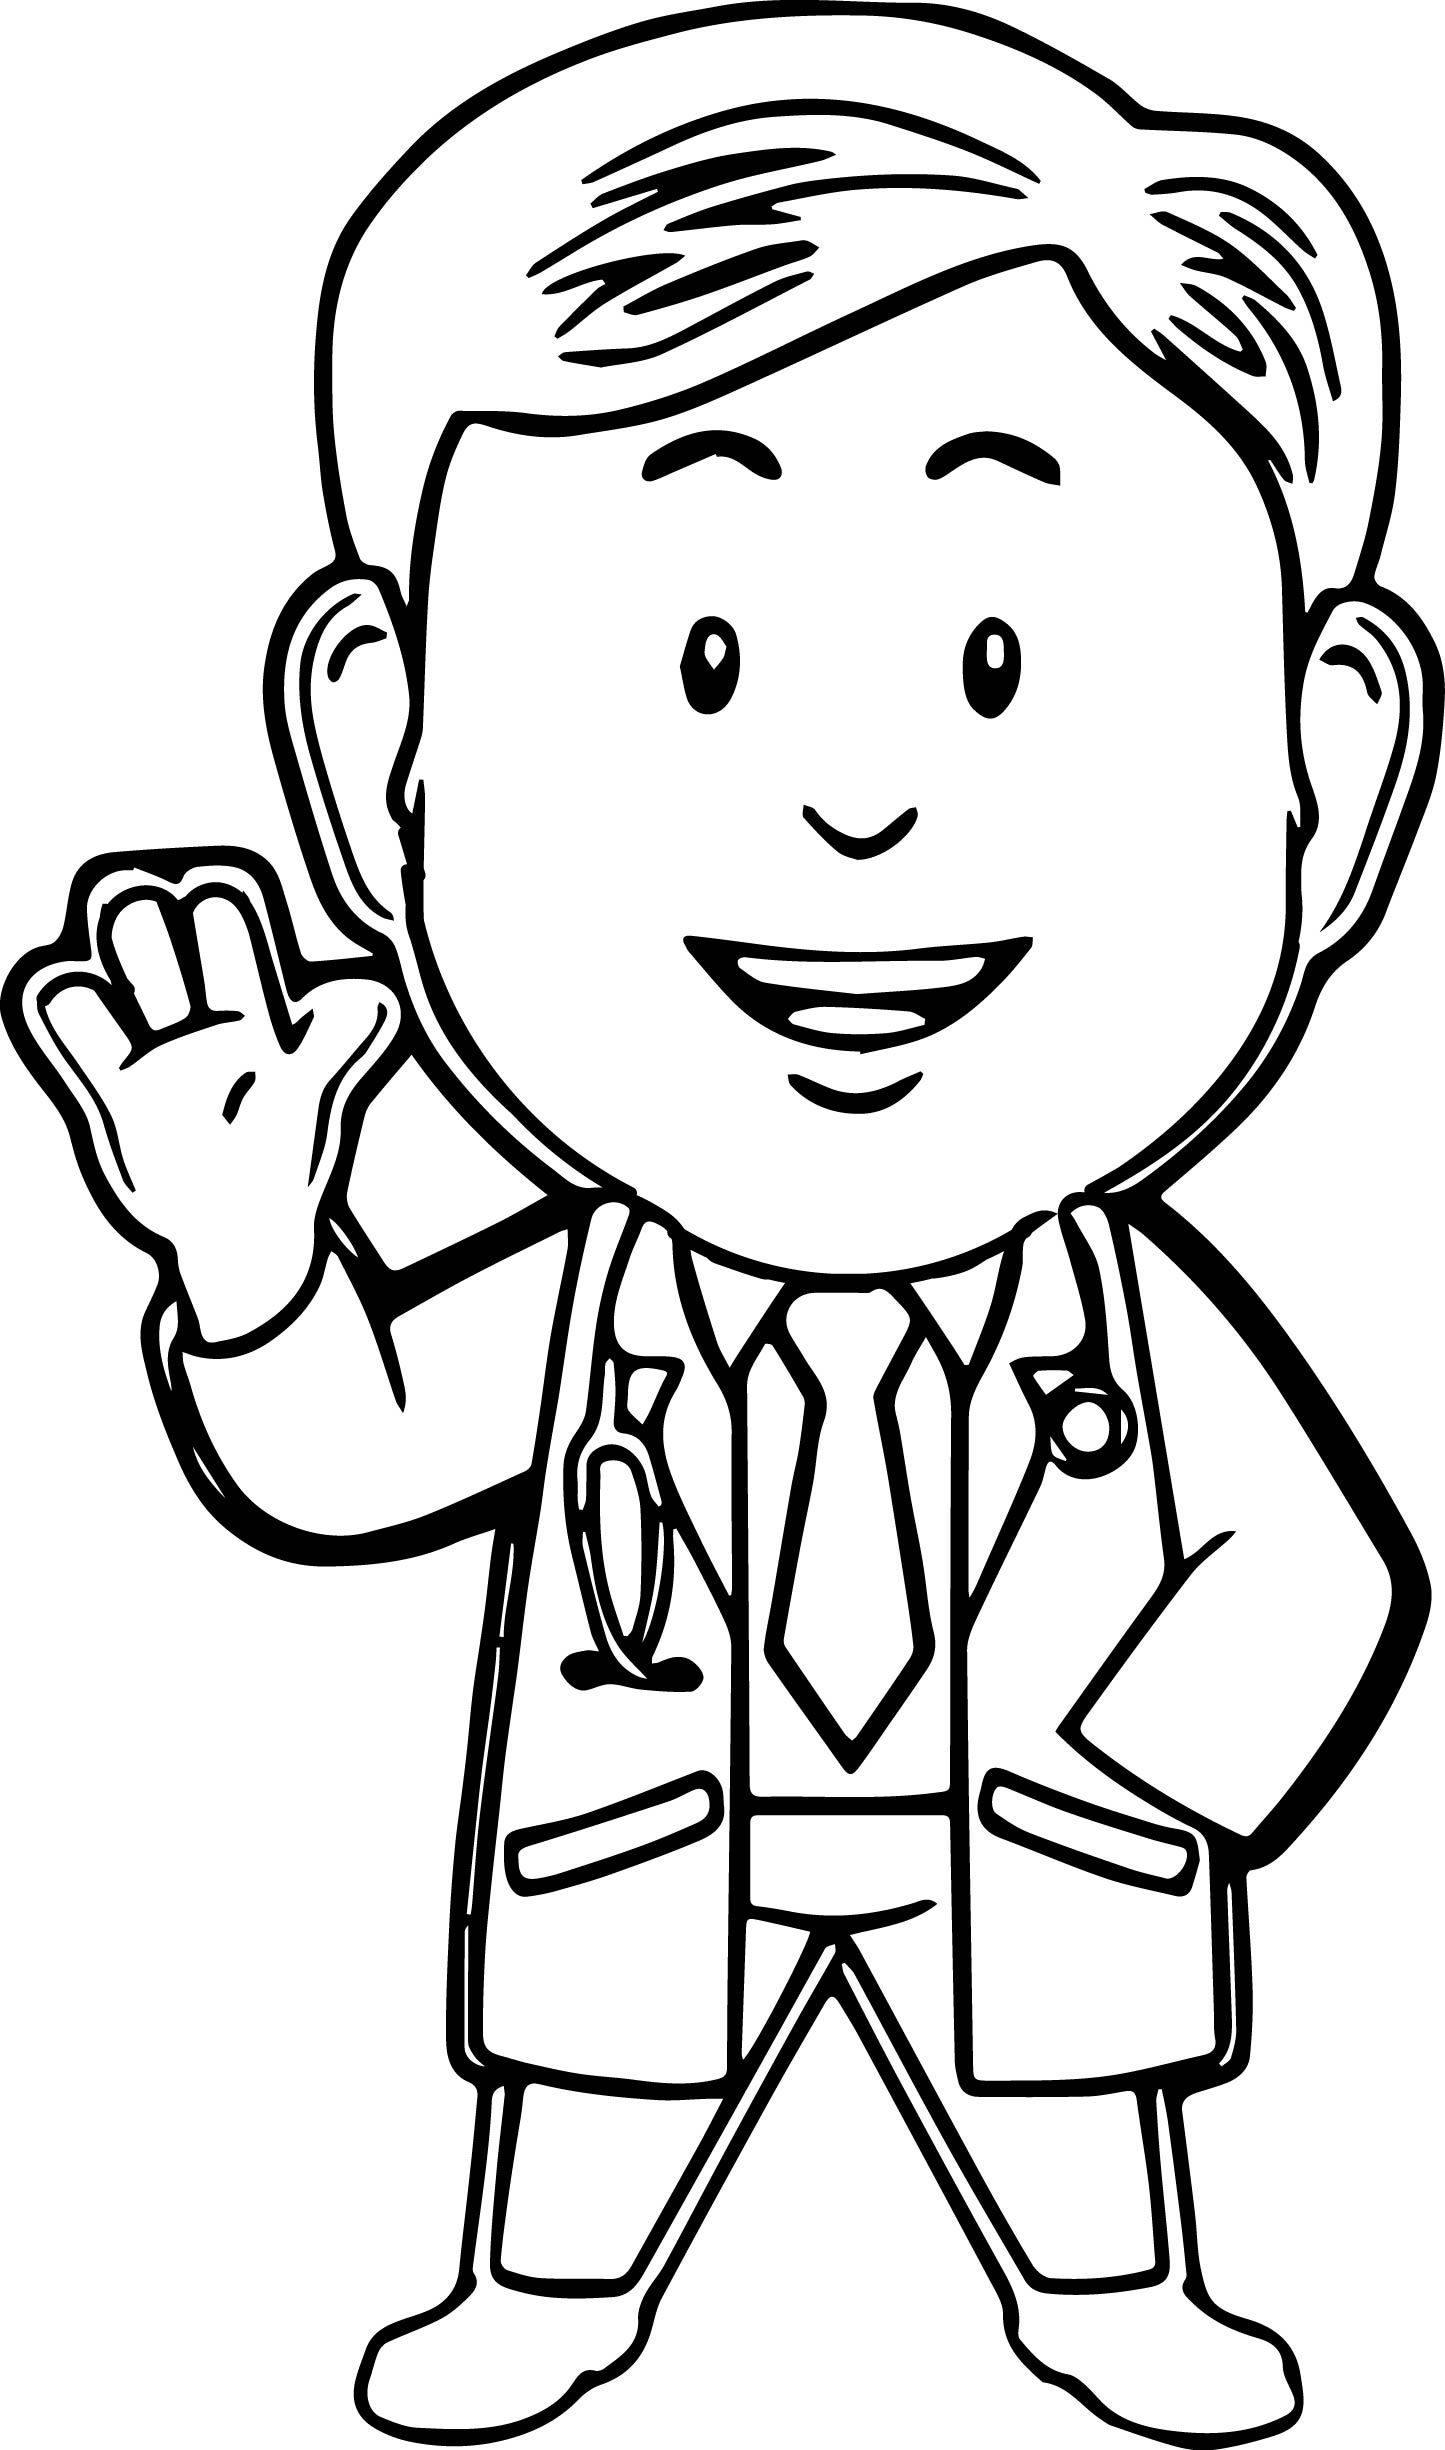 Doctor Coloring Pages With Doctor Coloring Pages | Coloring Pages ...